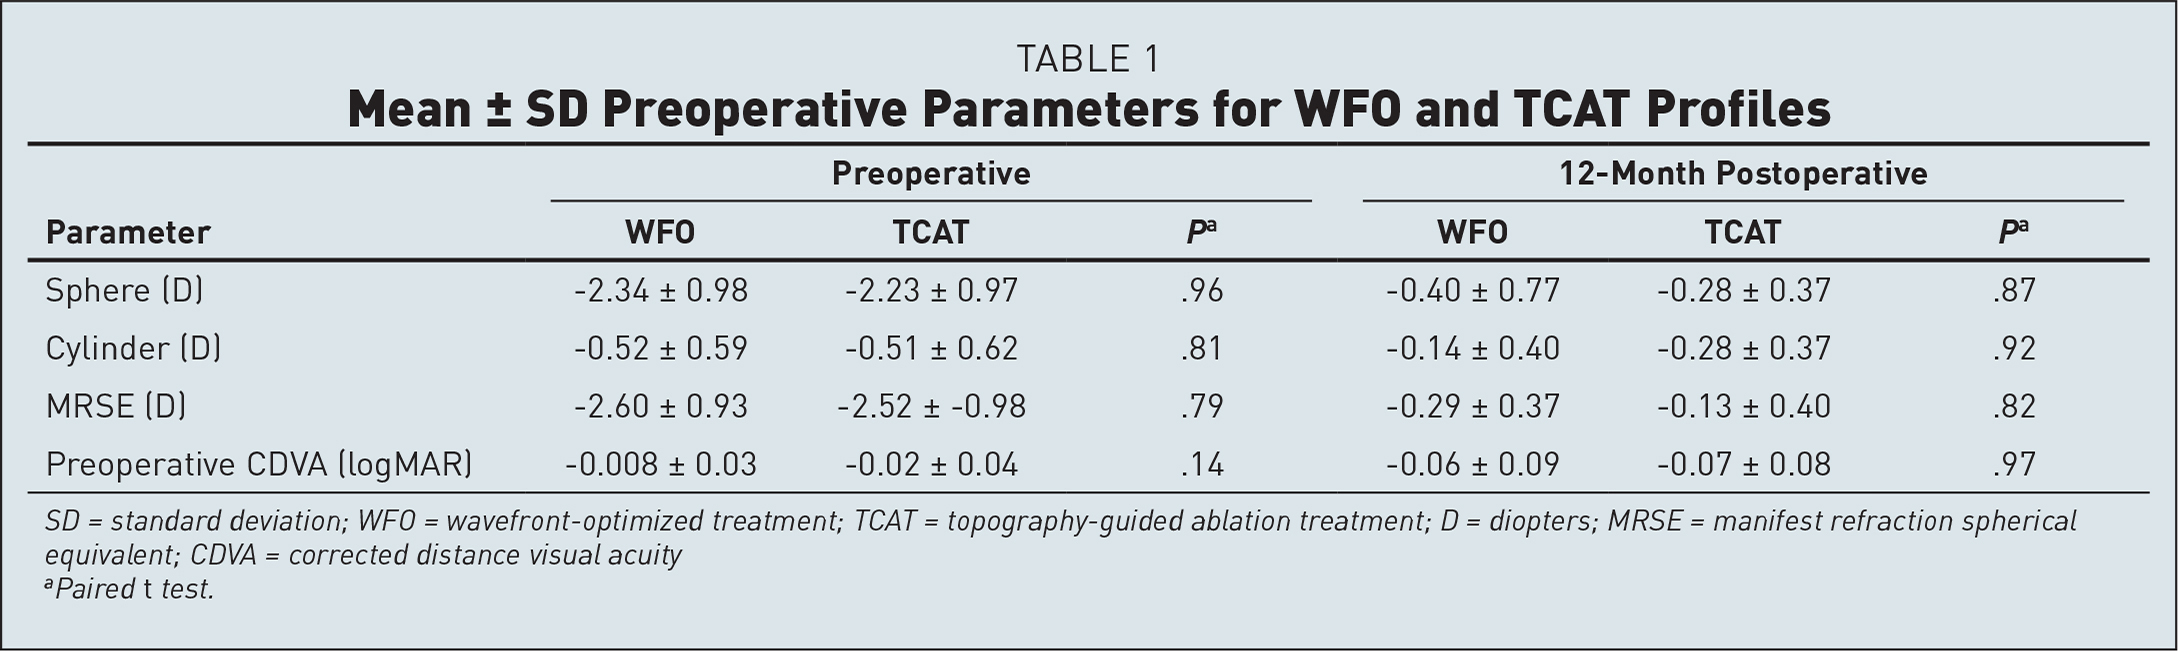 Mean ± SD Preoperative Parameters for WFO and TCAT Profiles